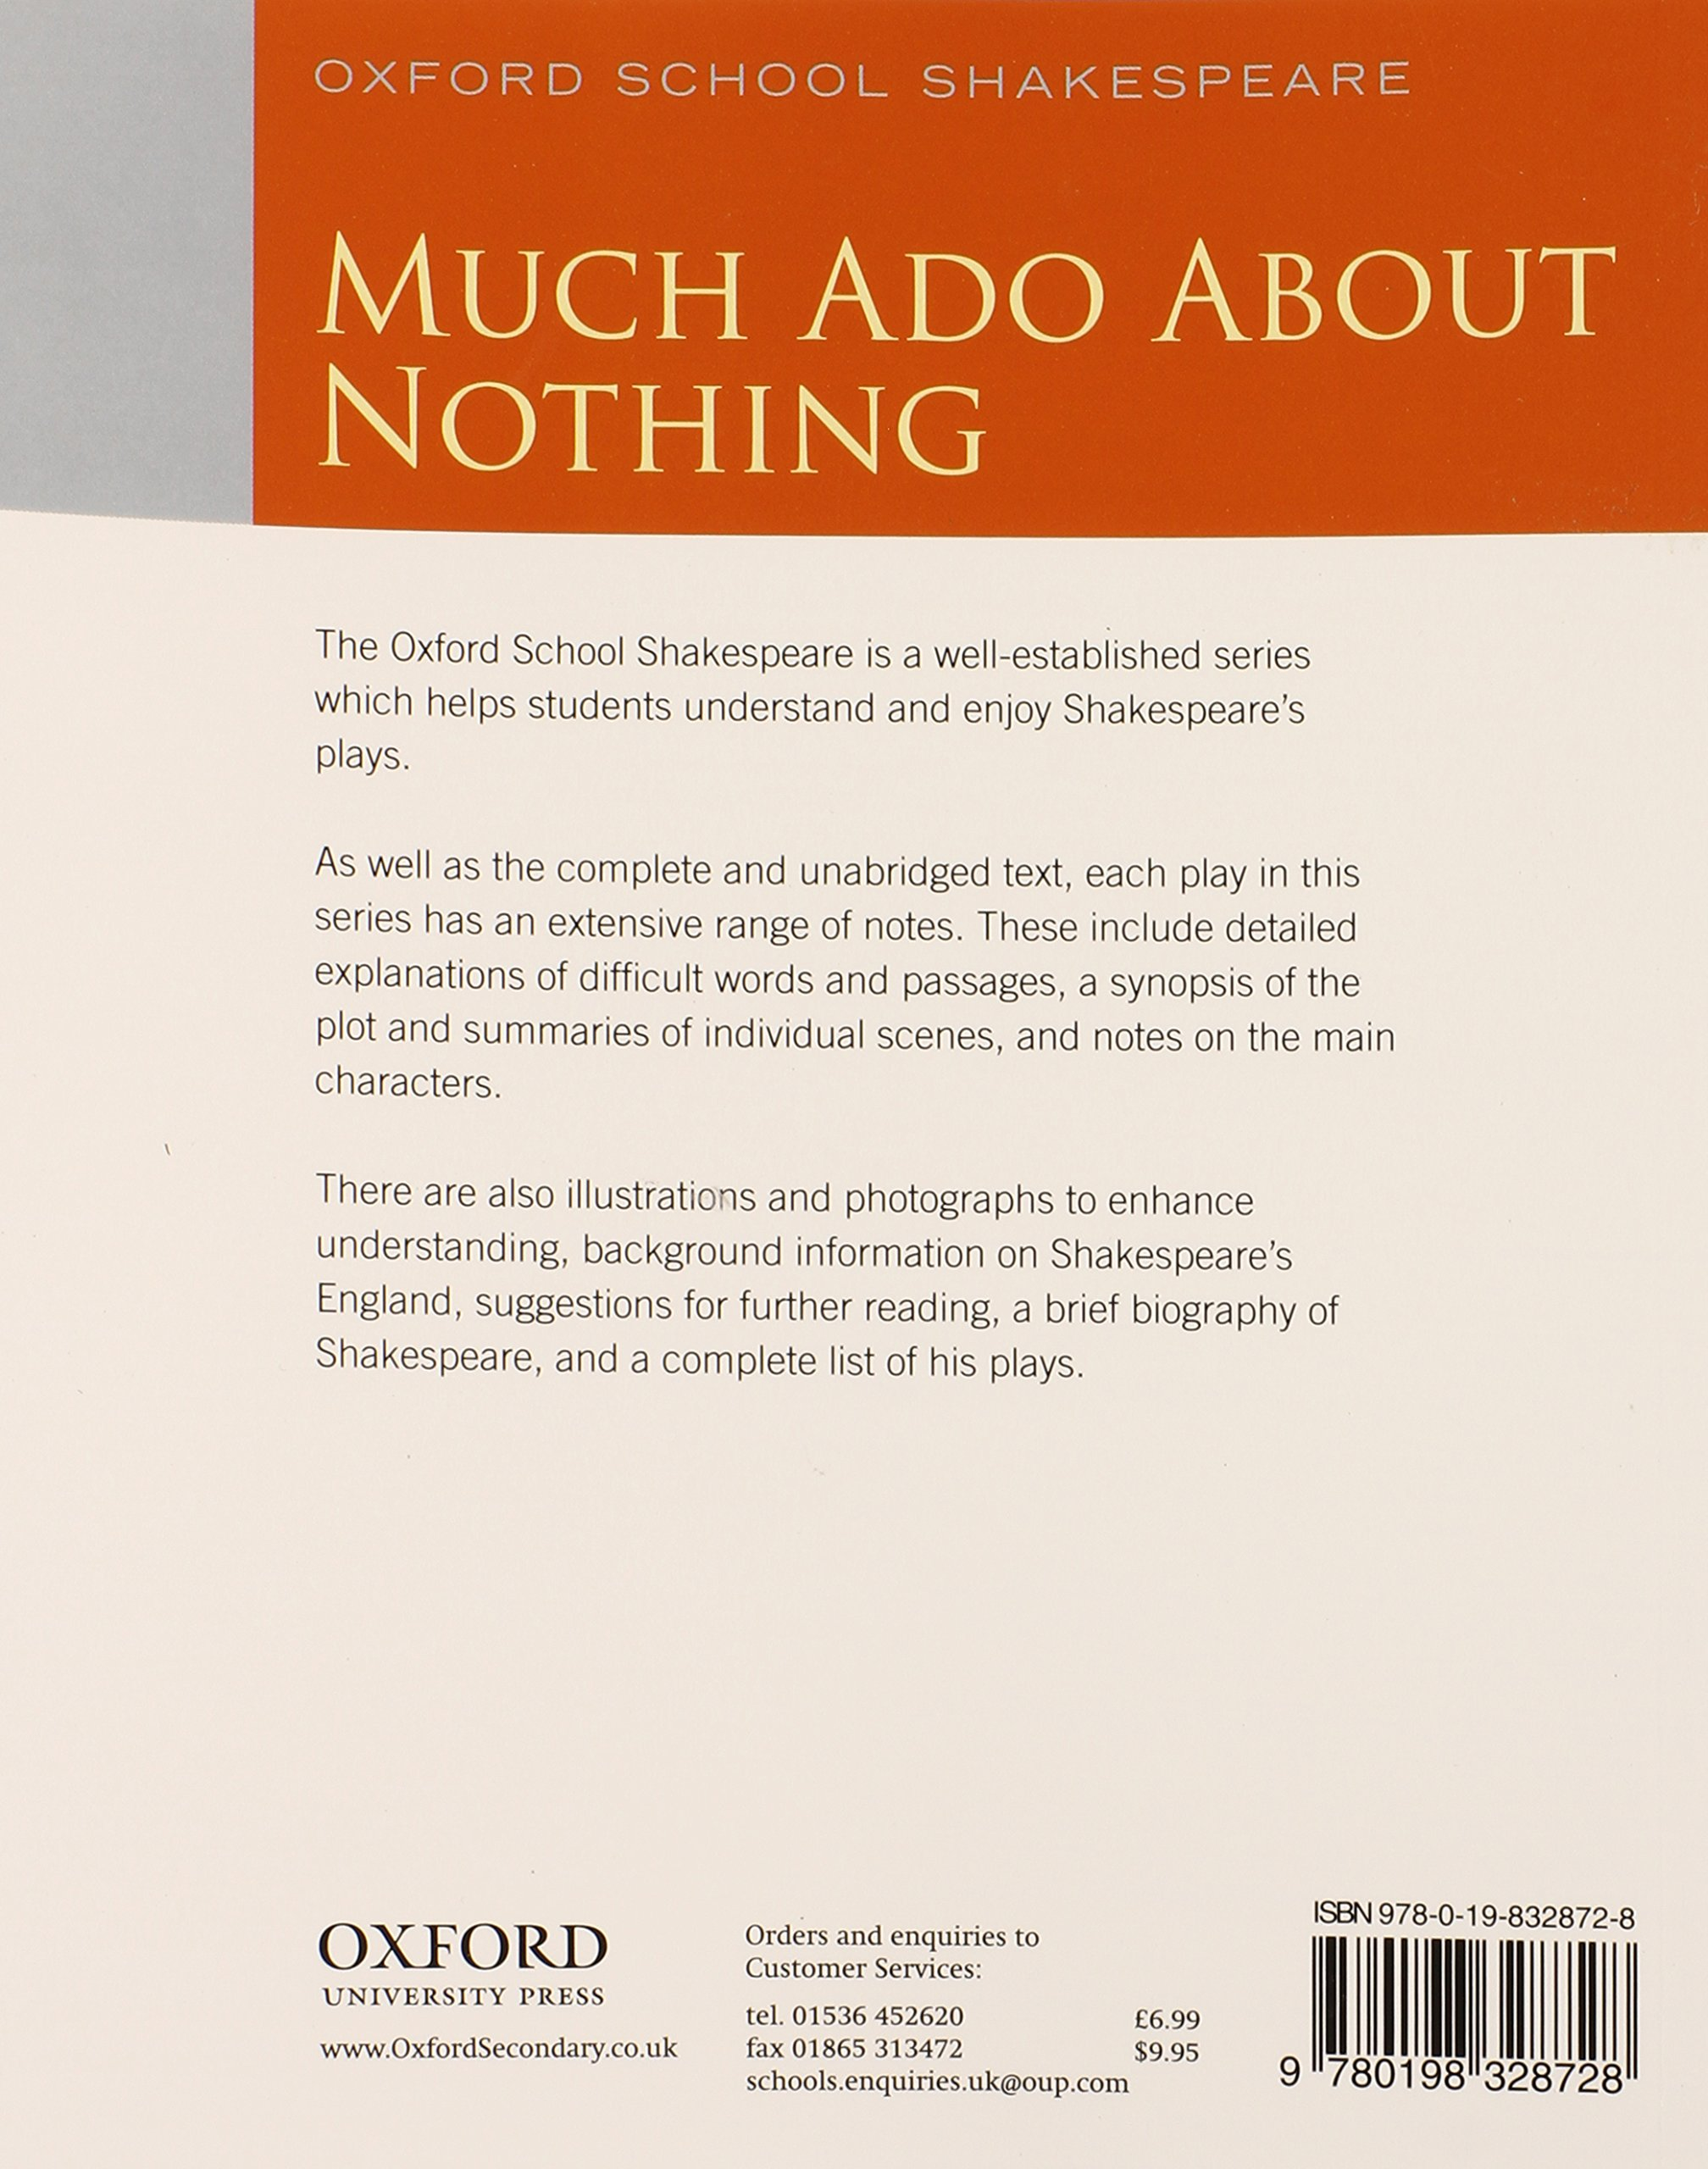 Oxford School Shakespeare Much Ado About Nothing Amazon